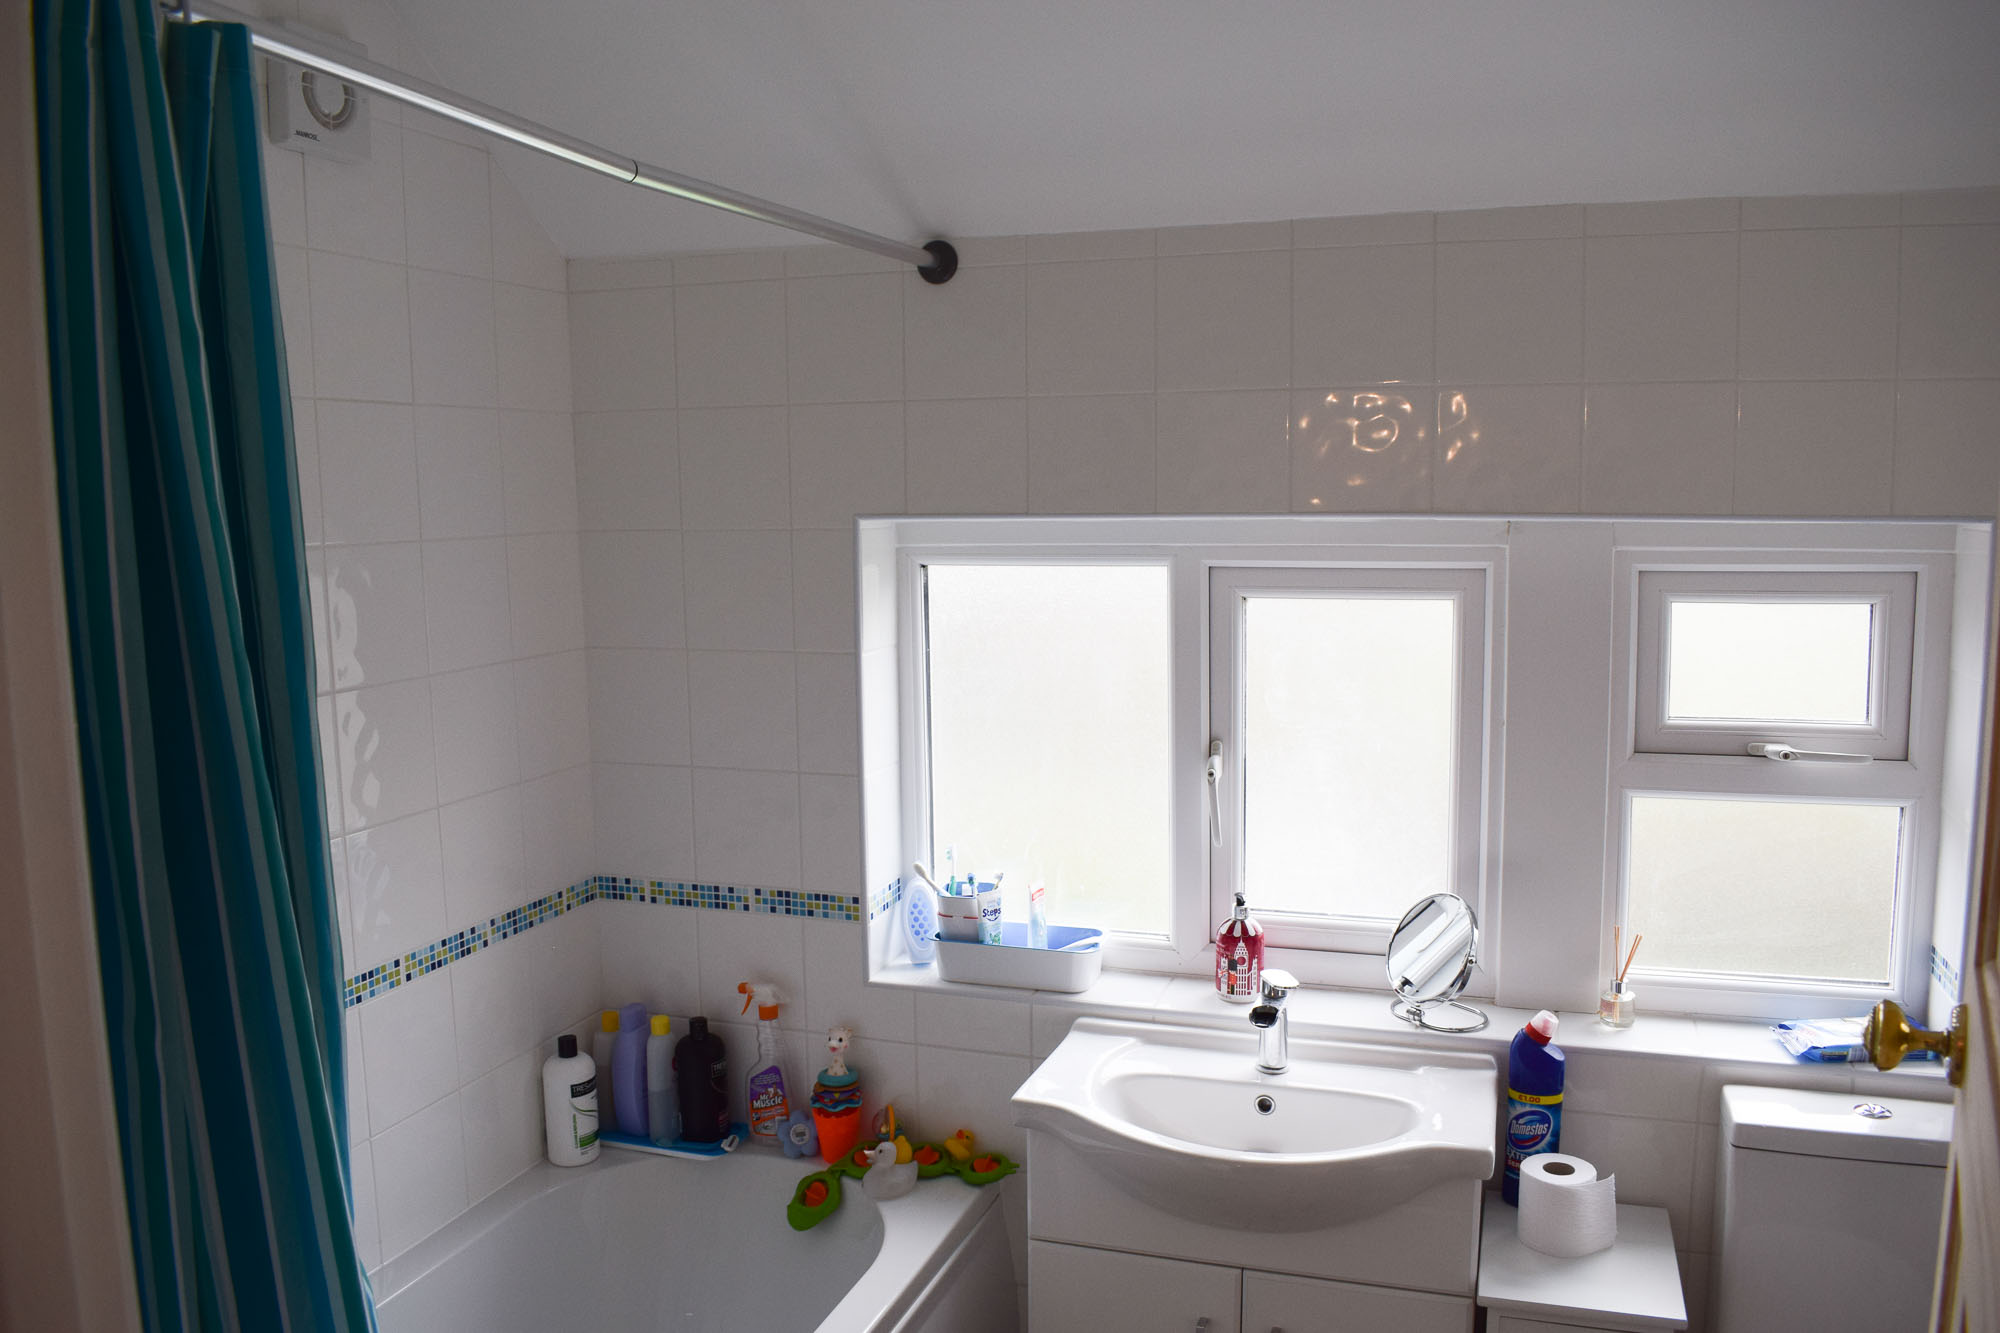 Home Refurbishment Builders South London Bwt Construction Ltd Cost Of Rewiring A House 2016 6 24